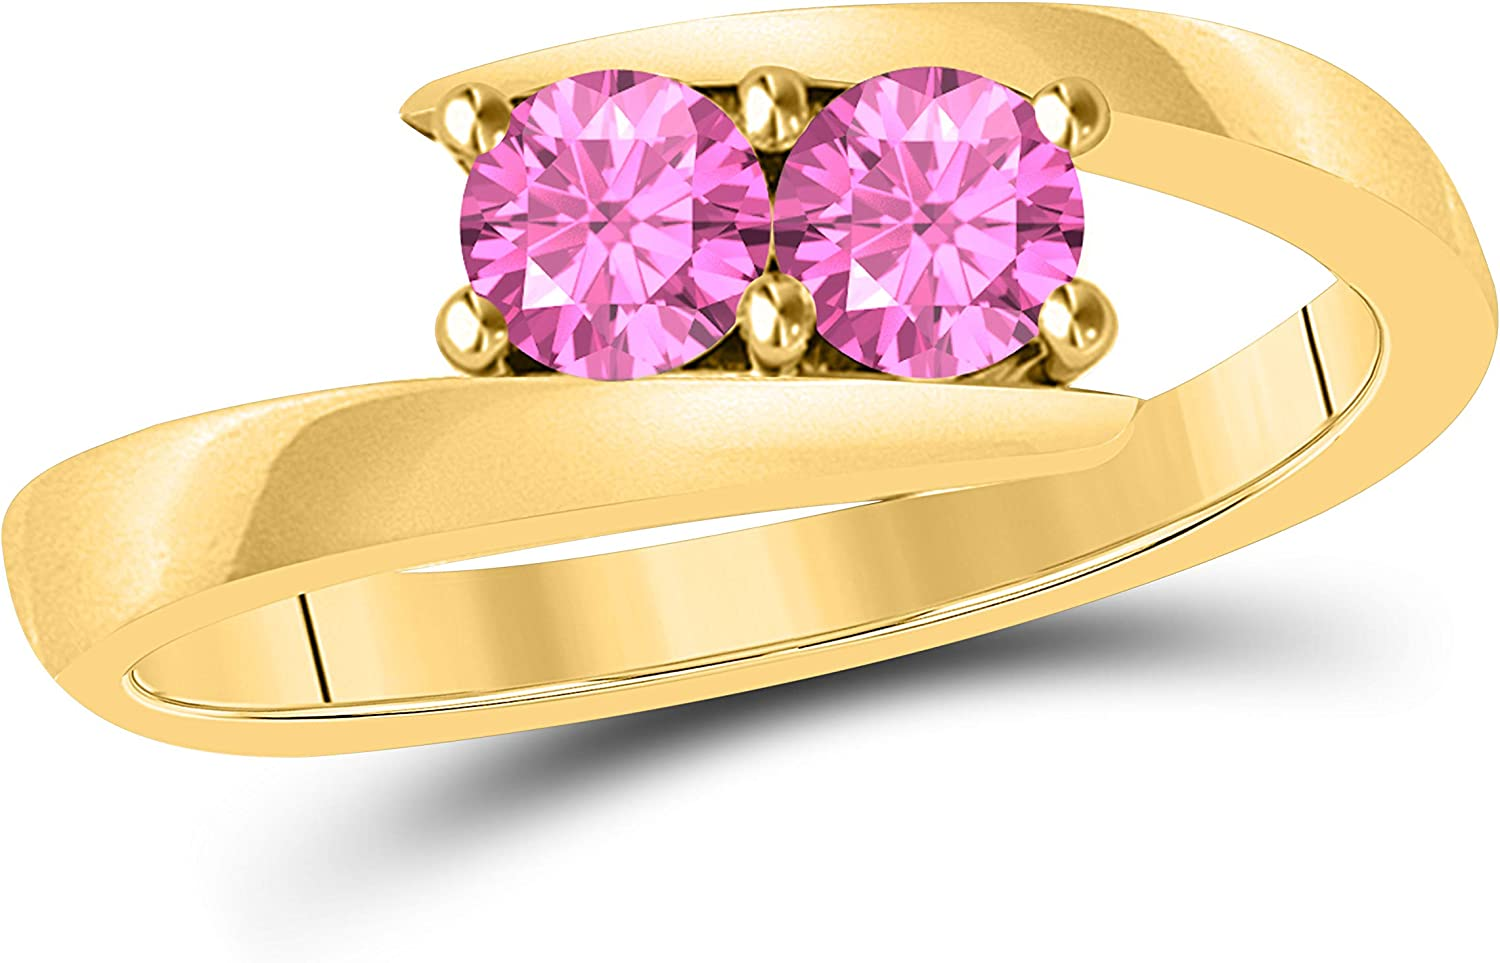 Silver Gems Factory Created Pink Sapphire Solitaire Tension Forever US Two Stone Ring 14k Solid Yellow Gold Finish 0.50ct Alloy